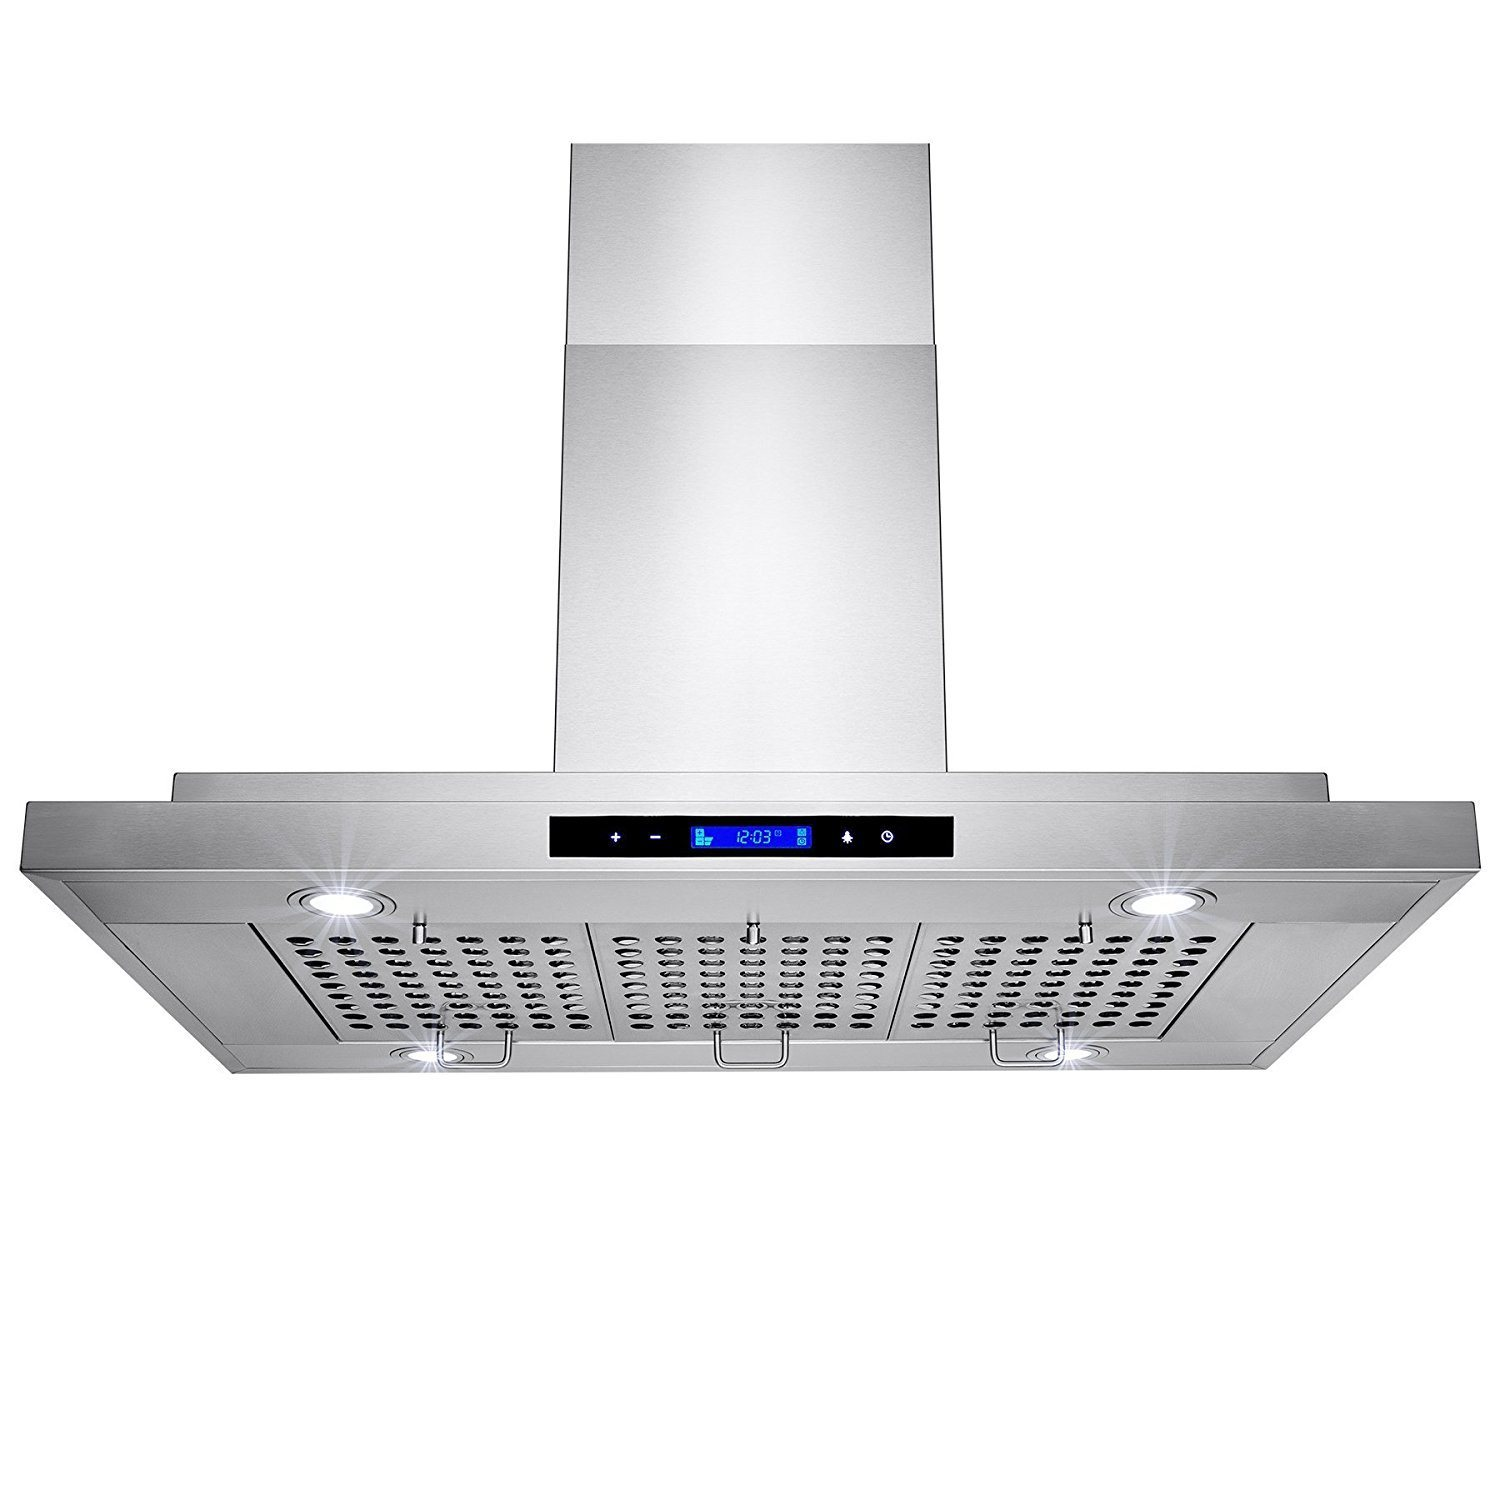 Best-selling range hoods on Amazon (not just for induction)